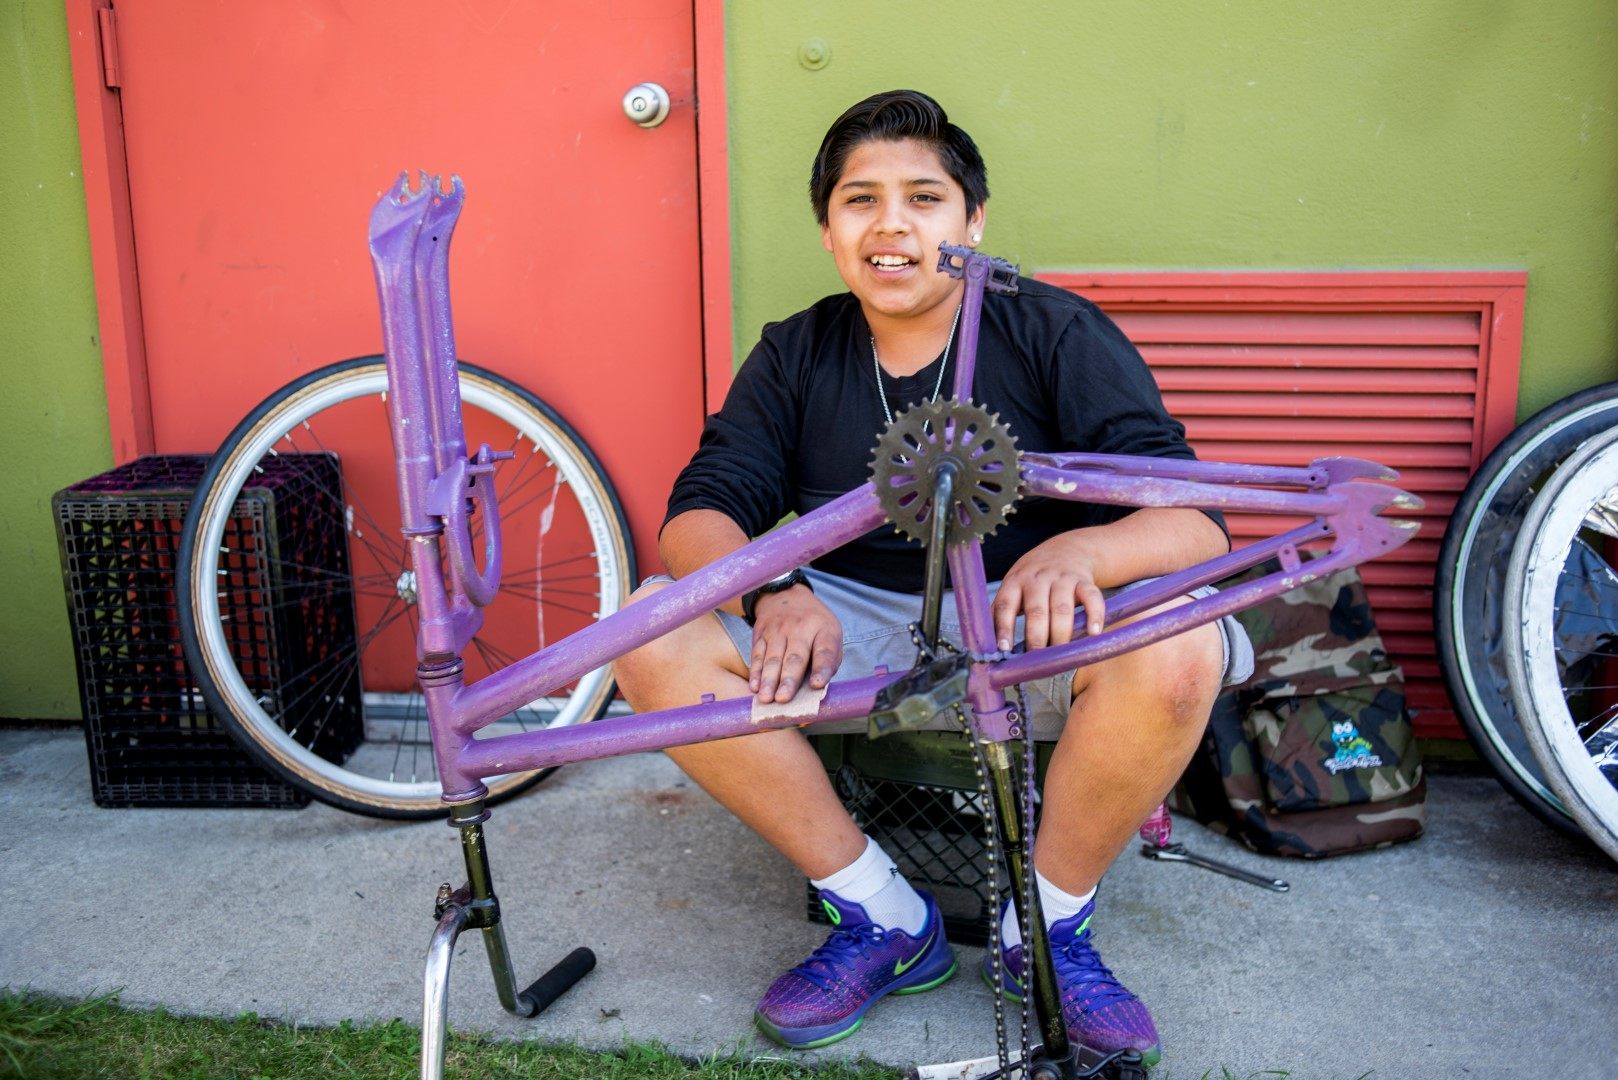 Image: a boy works on his bike. Photo: Pamela Palma Photography